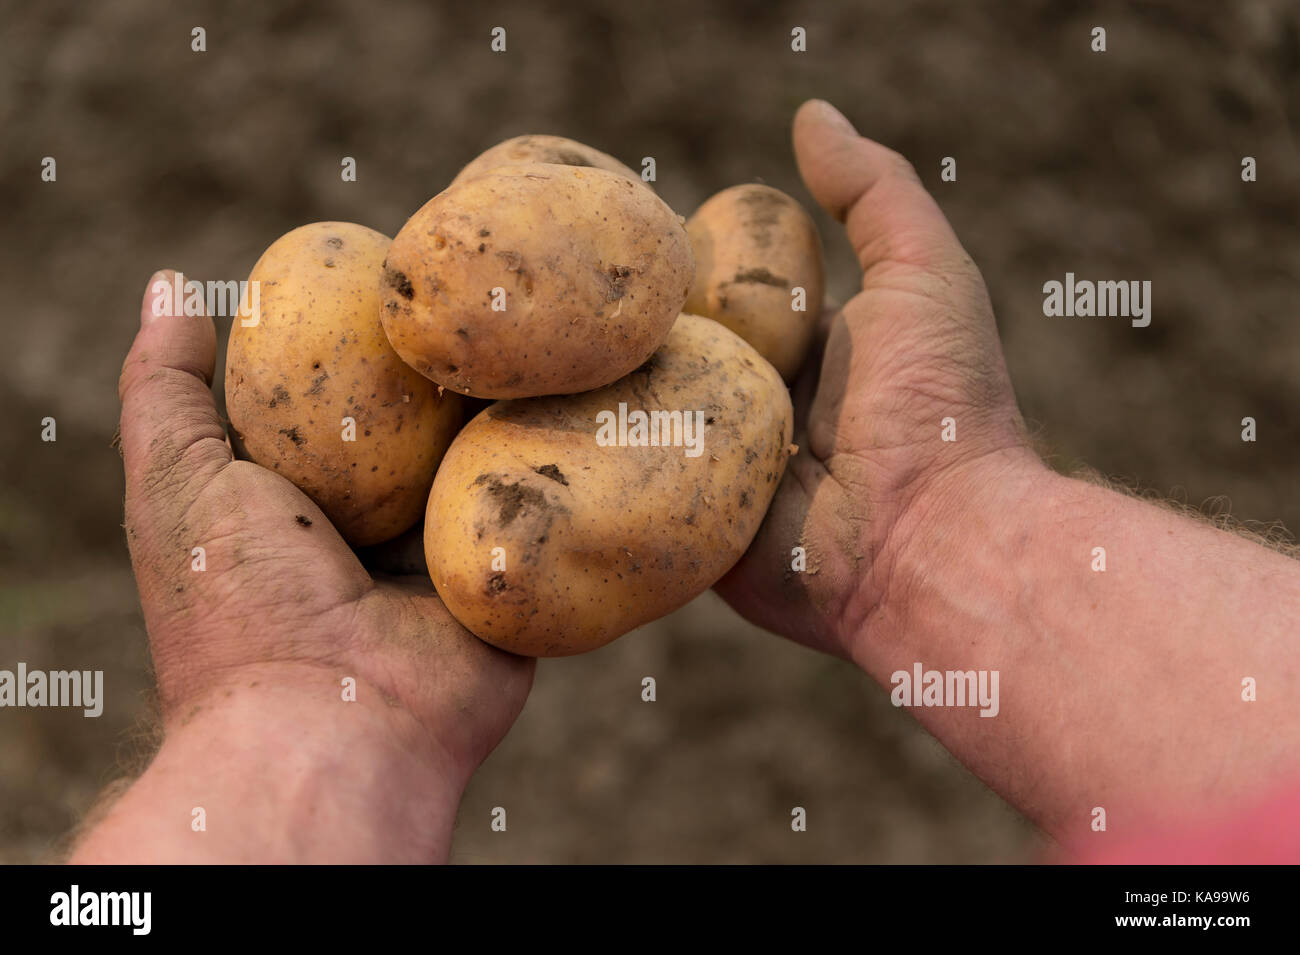 Man's hands hold potatoes freshly from the field harvested - Stock Image